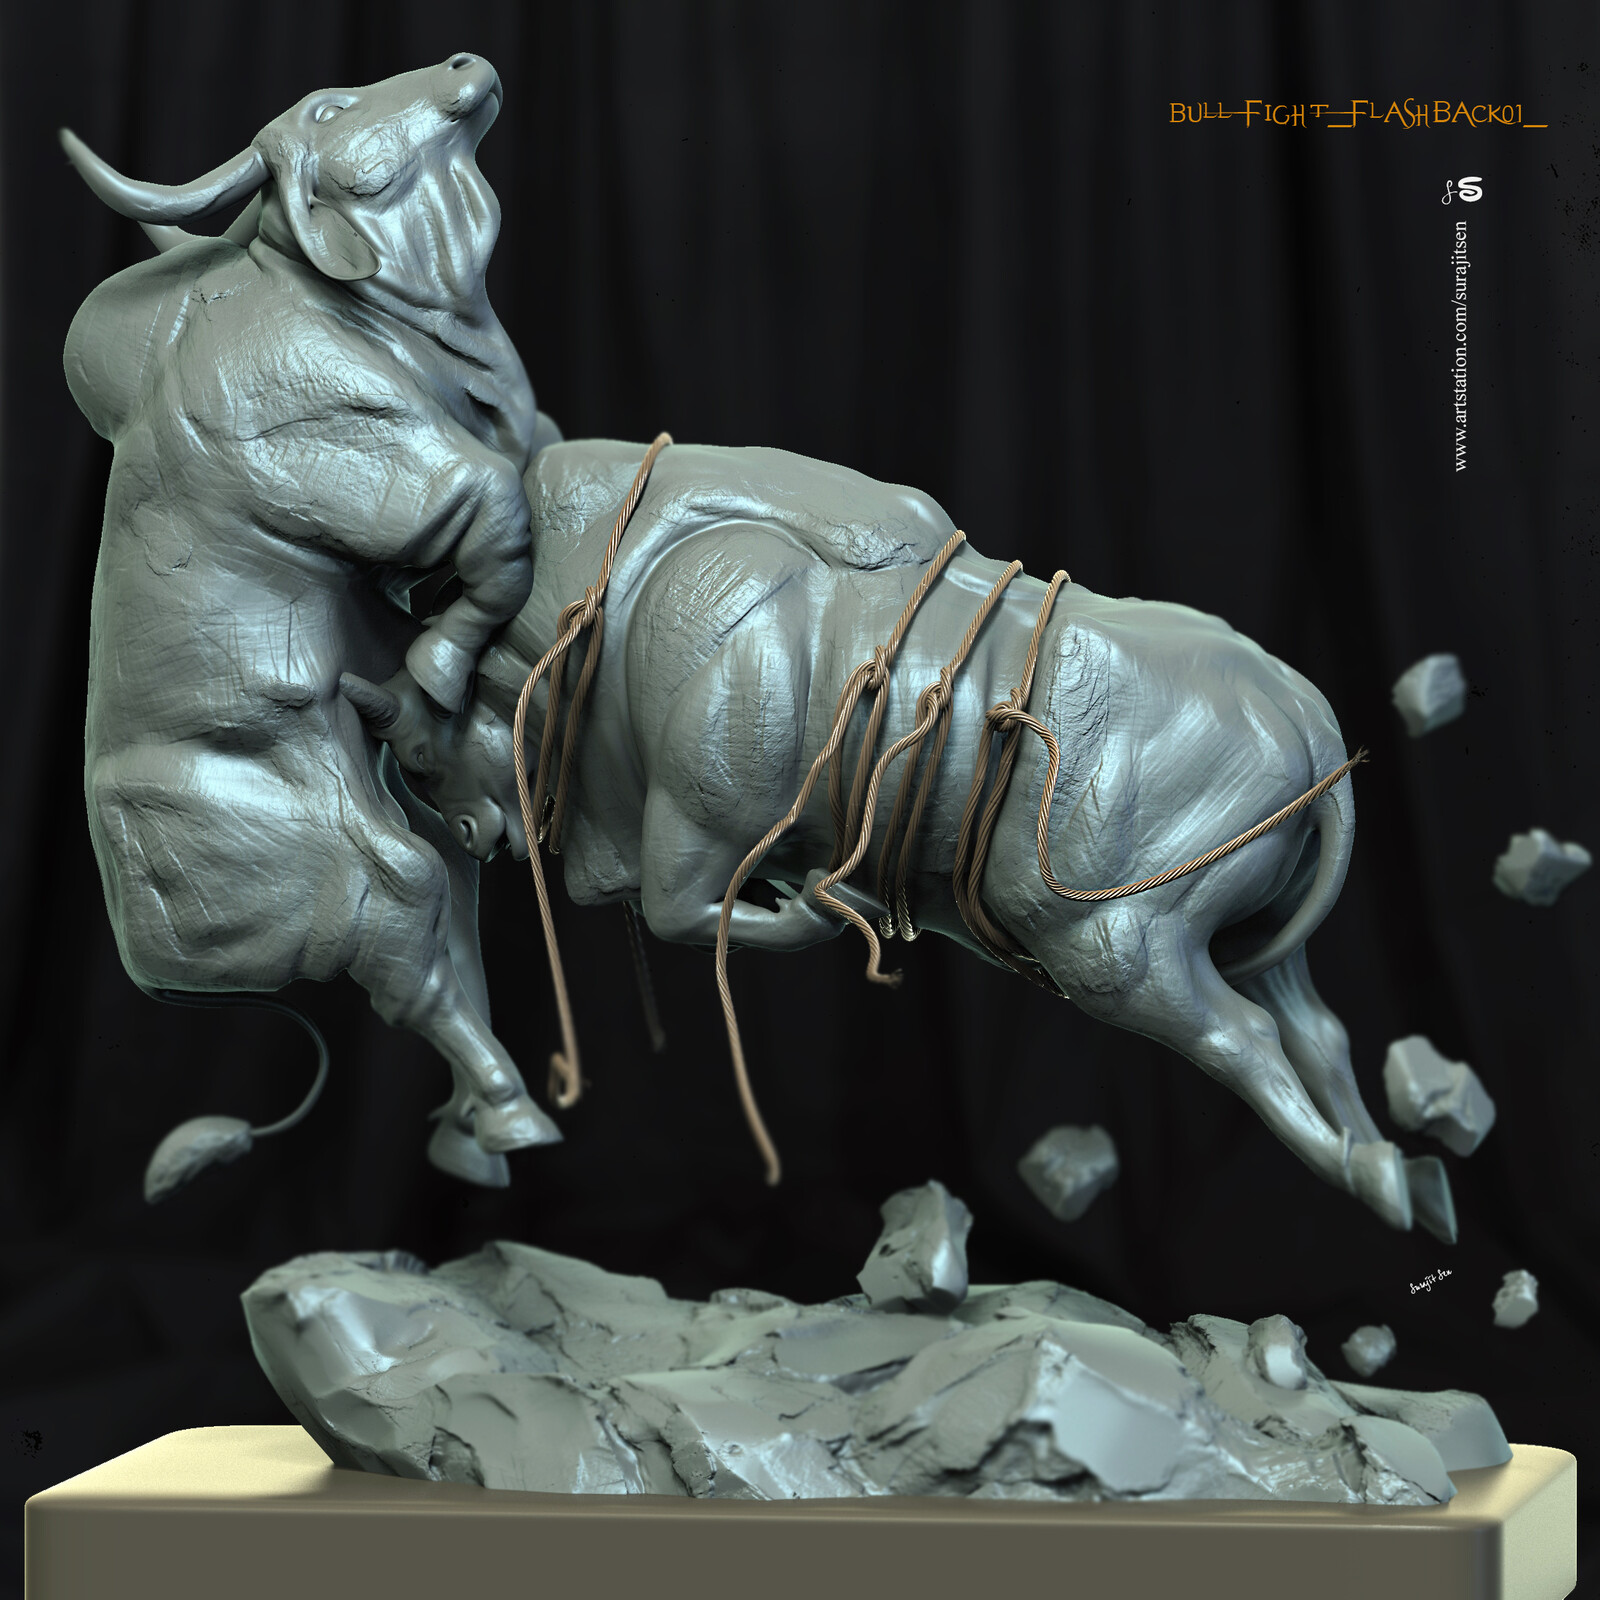 One of my thoughts. Digital Sculpture. Fighting Bulls. #flashback2019🔥